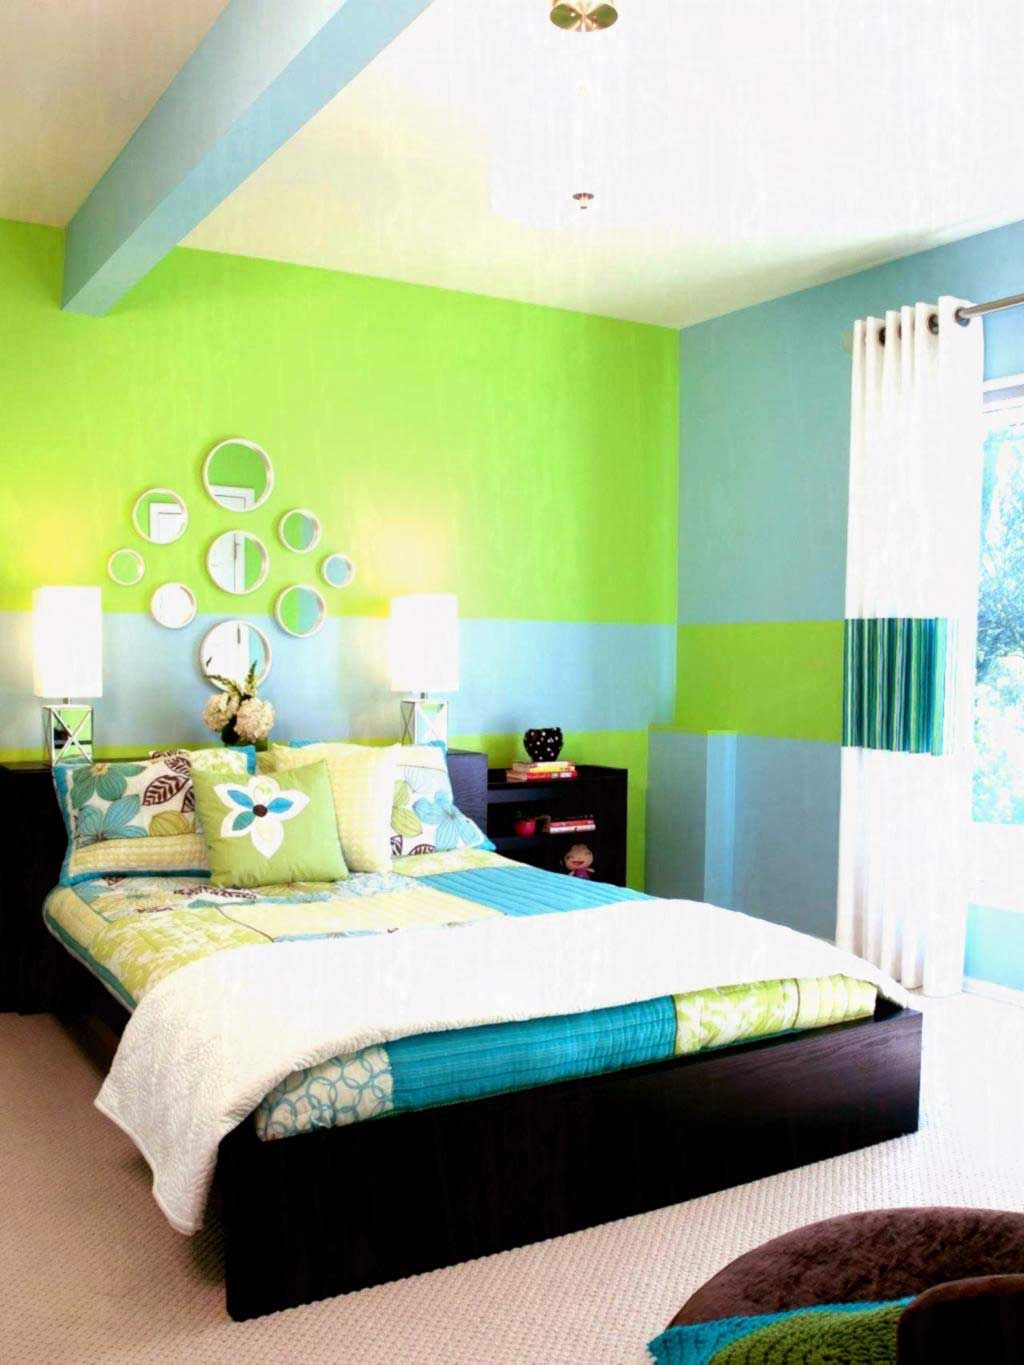 33 amazing apartment bedroom wall decor ideas green on cute bedroom decor ideas for teen romantic bedroom decorating with light and color id=28089